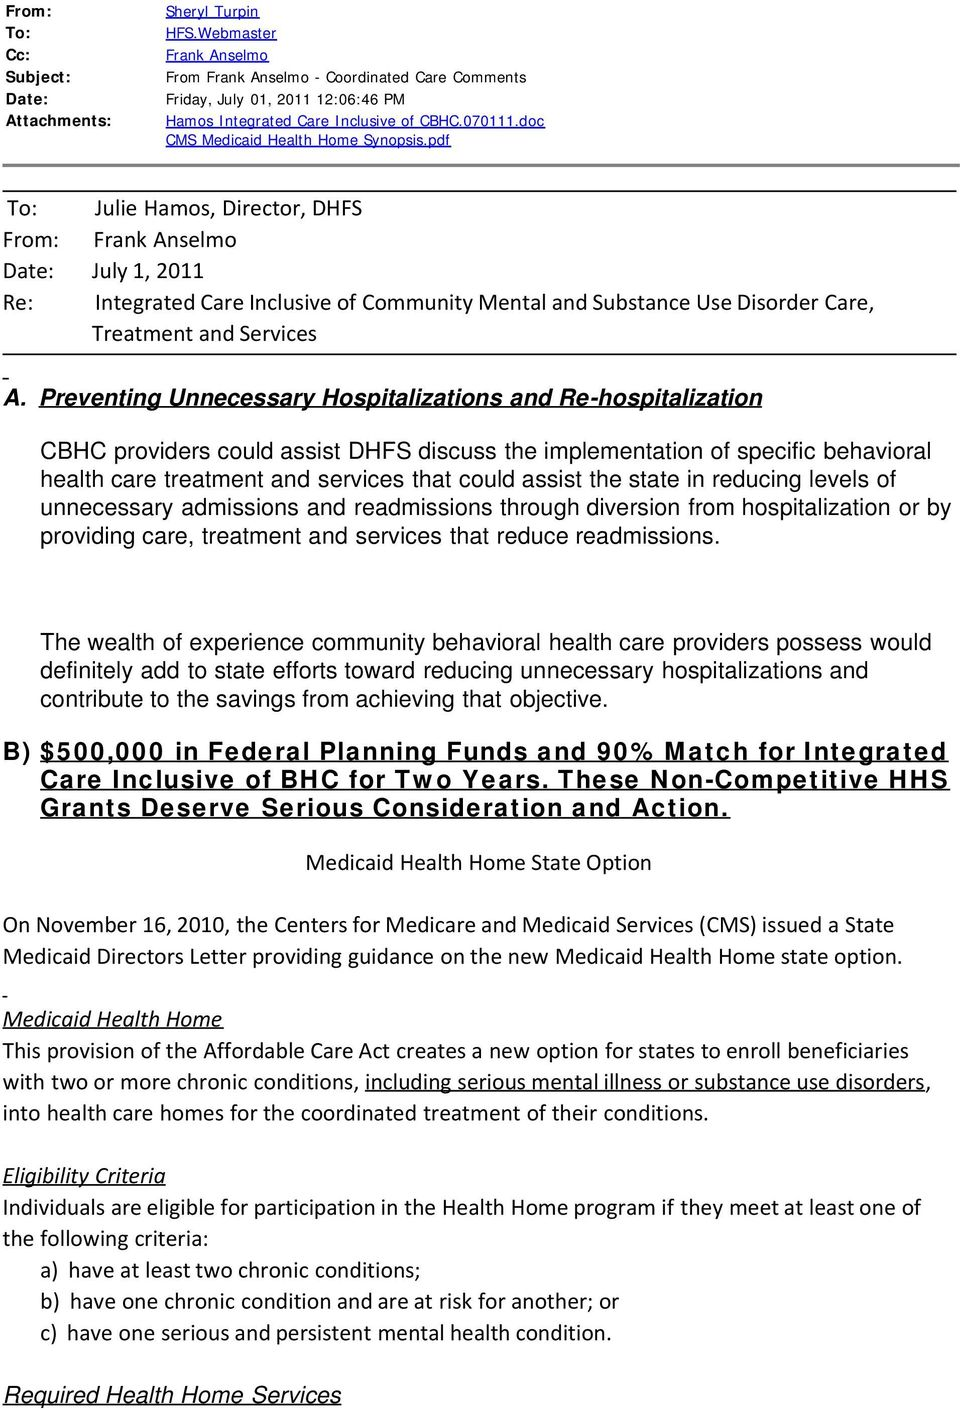 pdf To: Julie Hamos, Director, DHFS From: Frank Anselmo Date: July 1, 2011 Re: Integrated Care Inclusive of Community Mental and Substance Use Disorder Care, Treatment and Services A.